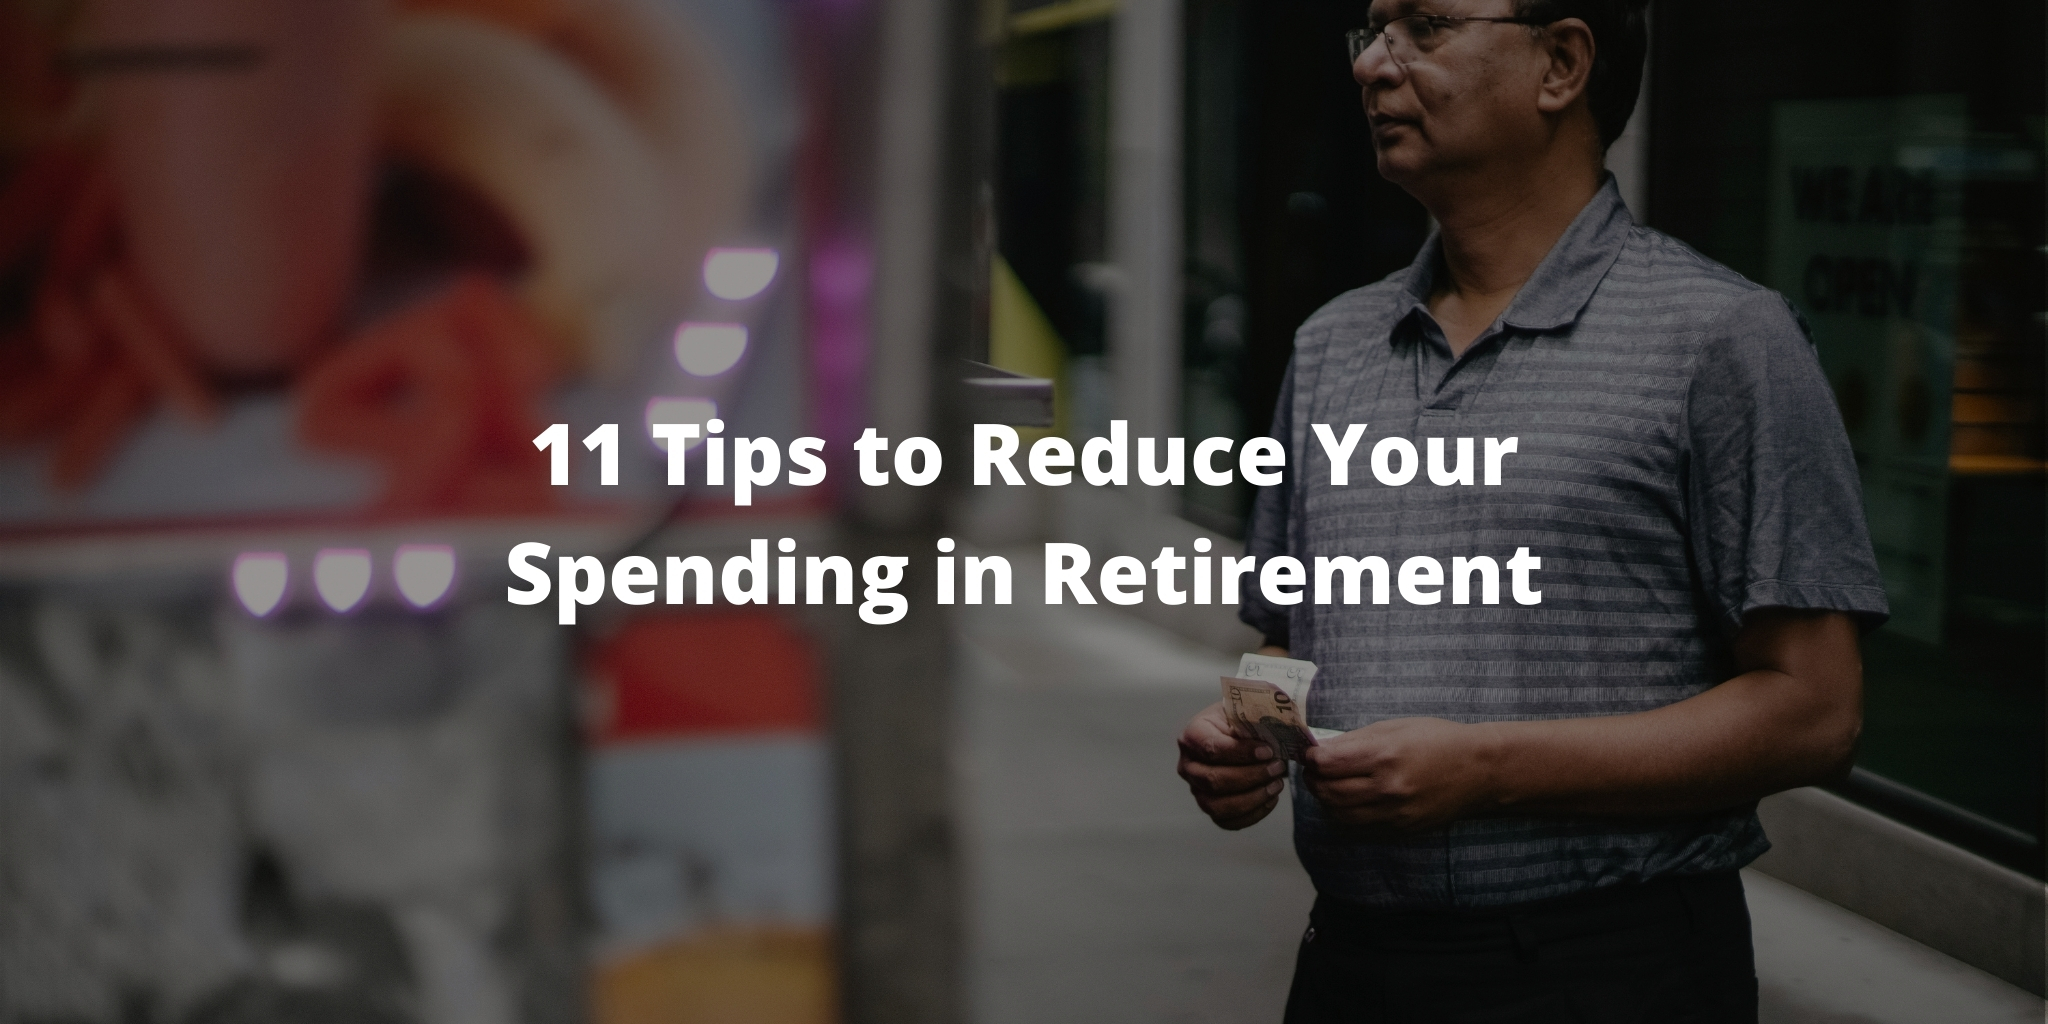 11 Tips to Reduce Your Spending in Retirement